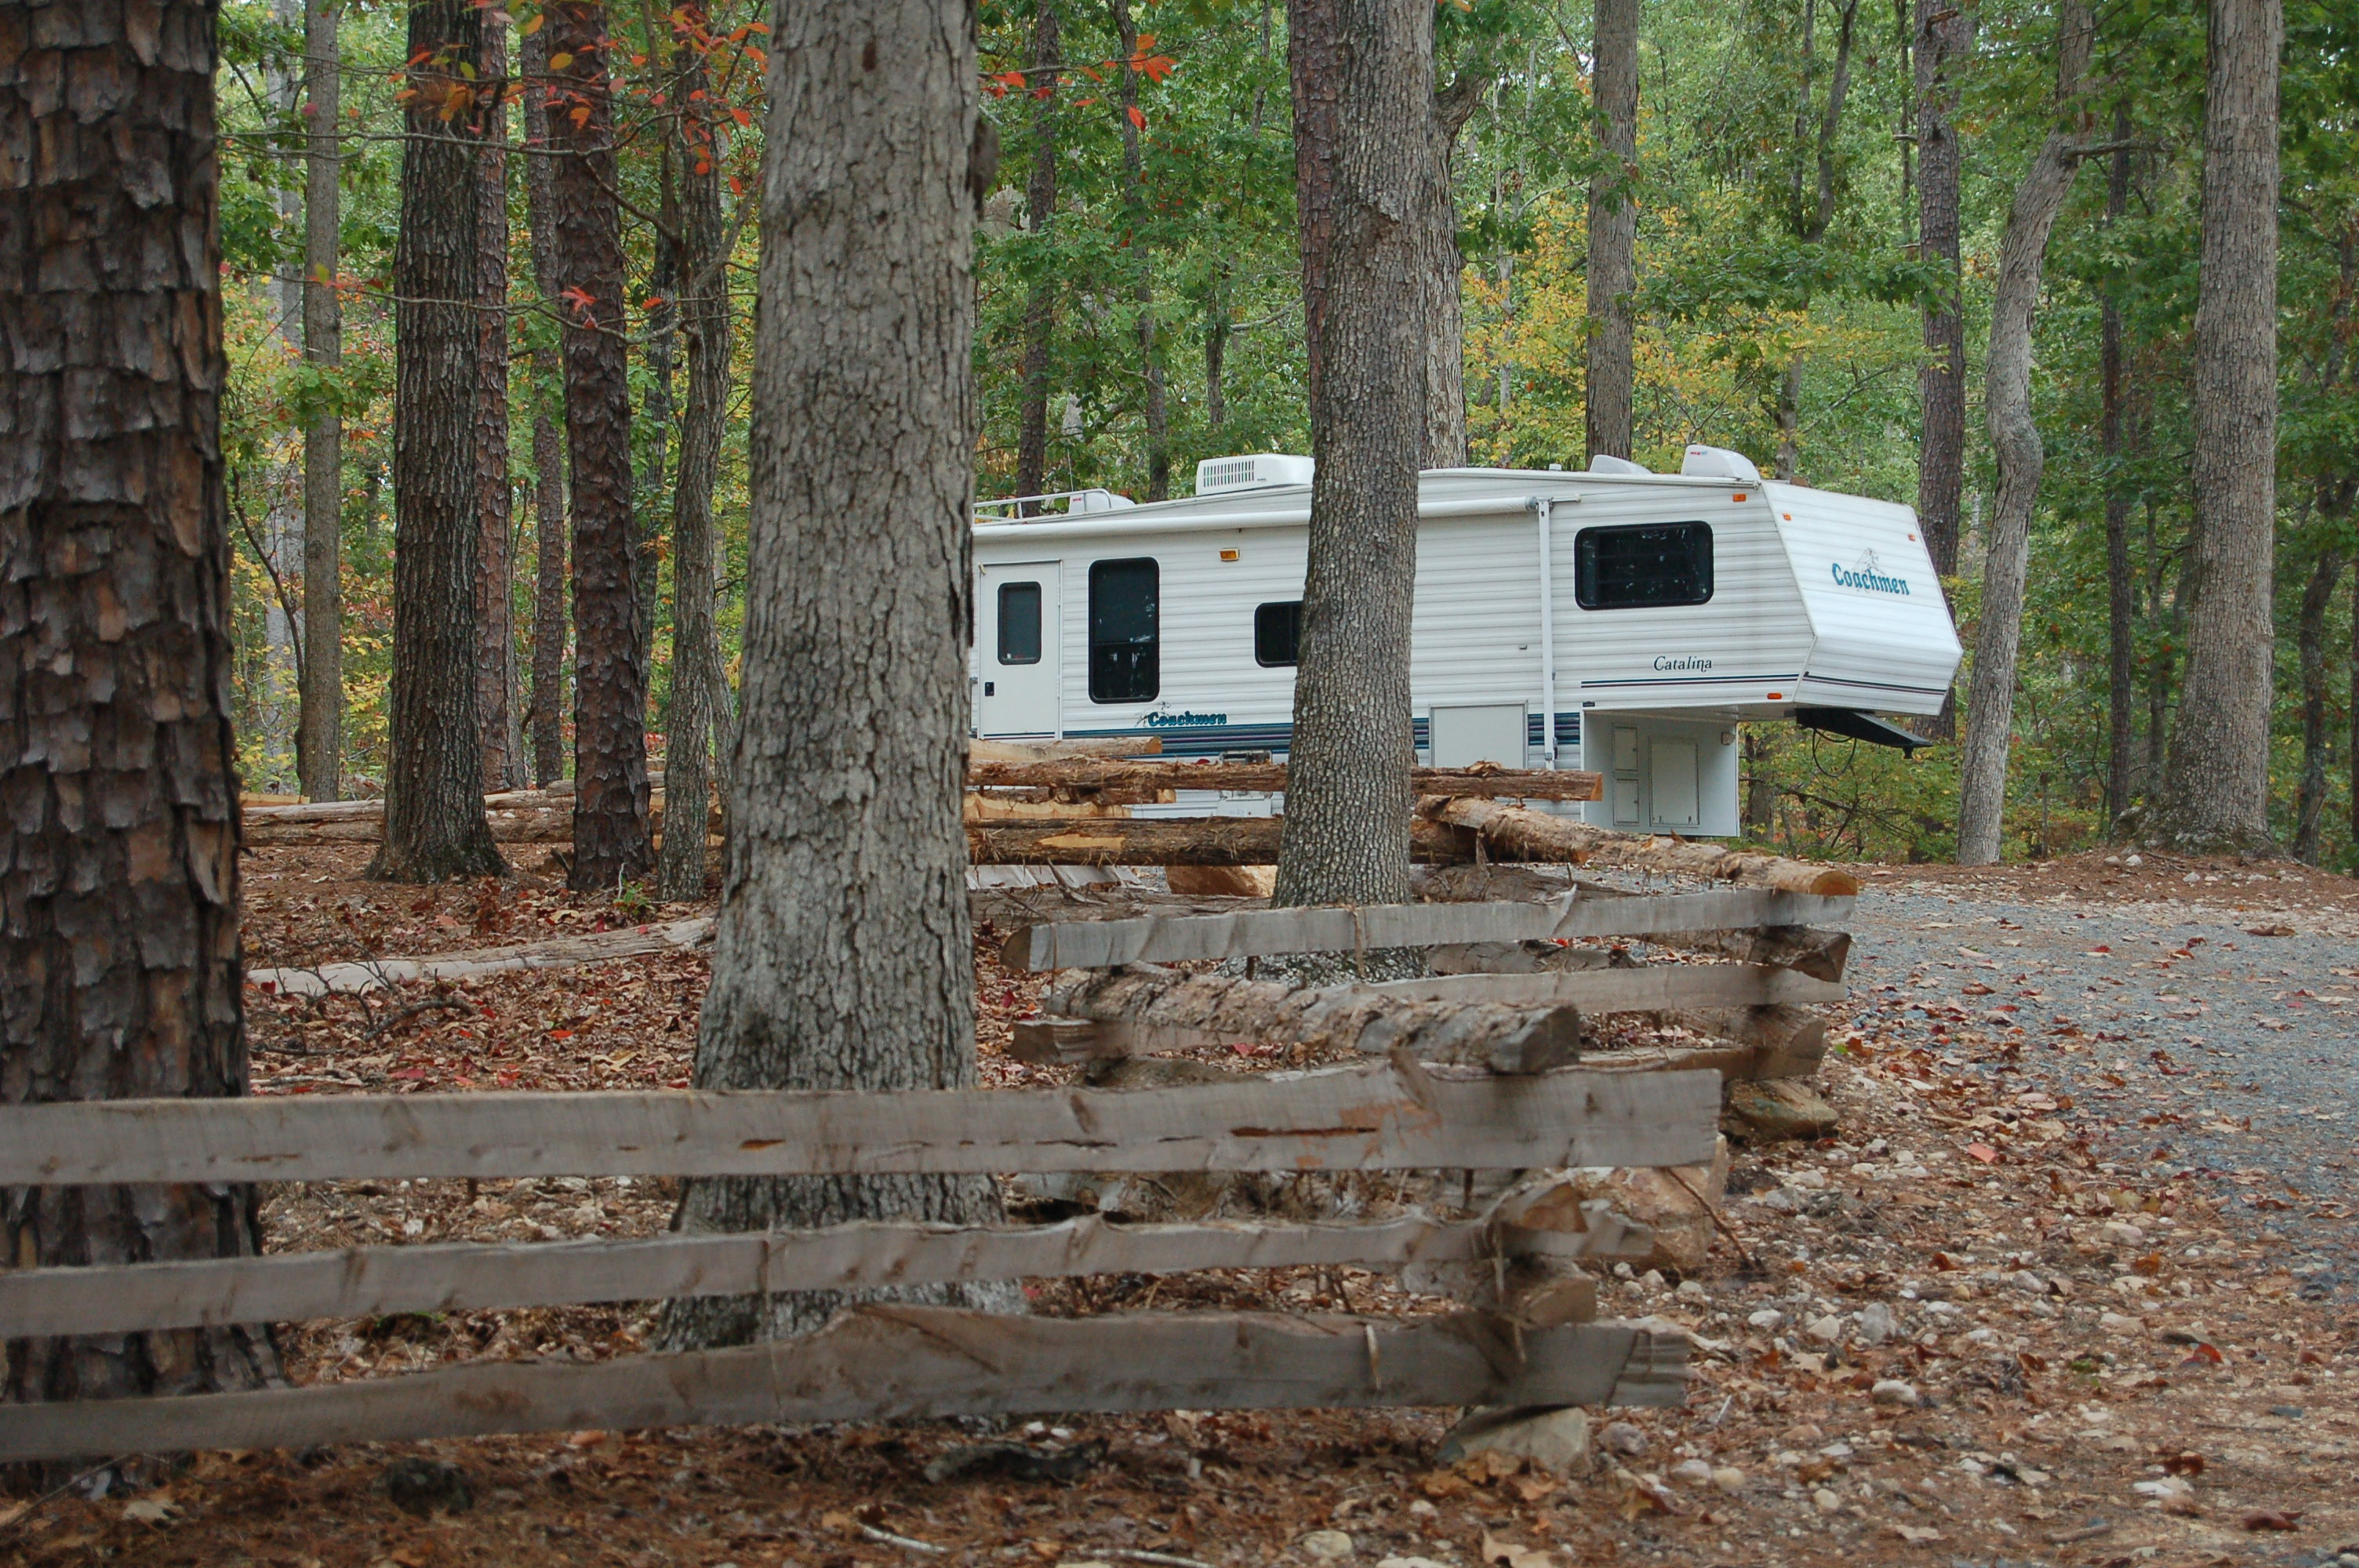 goodysrvcampground.com